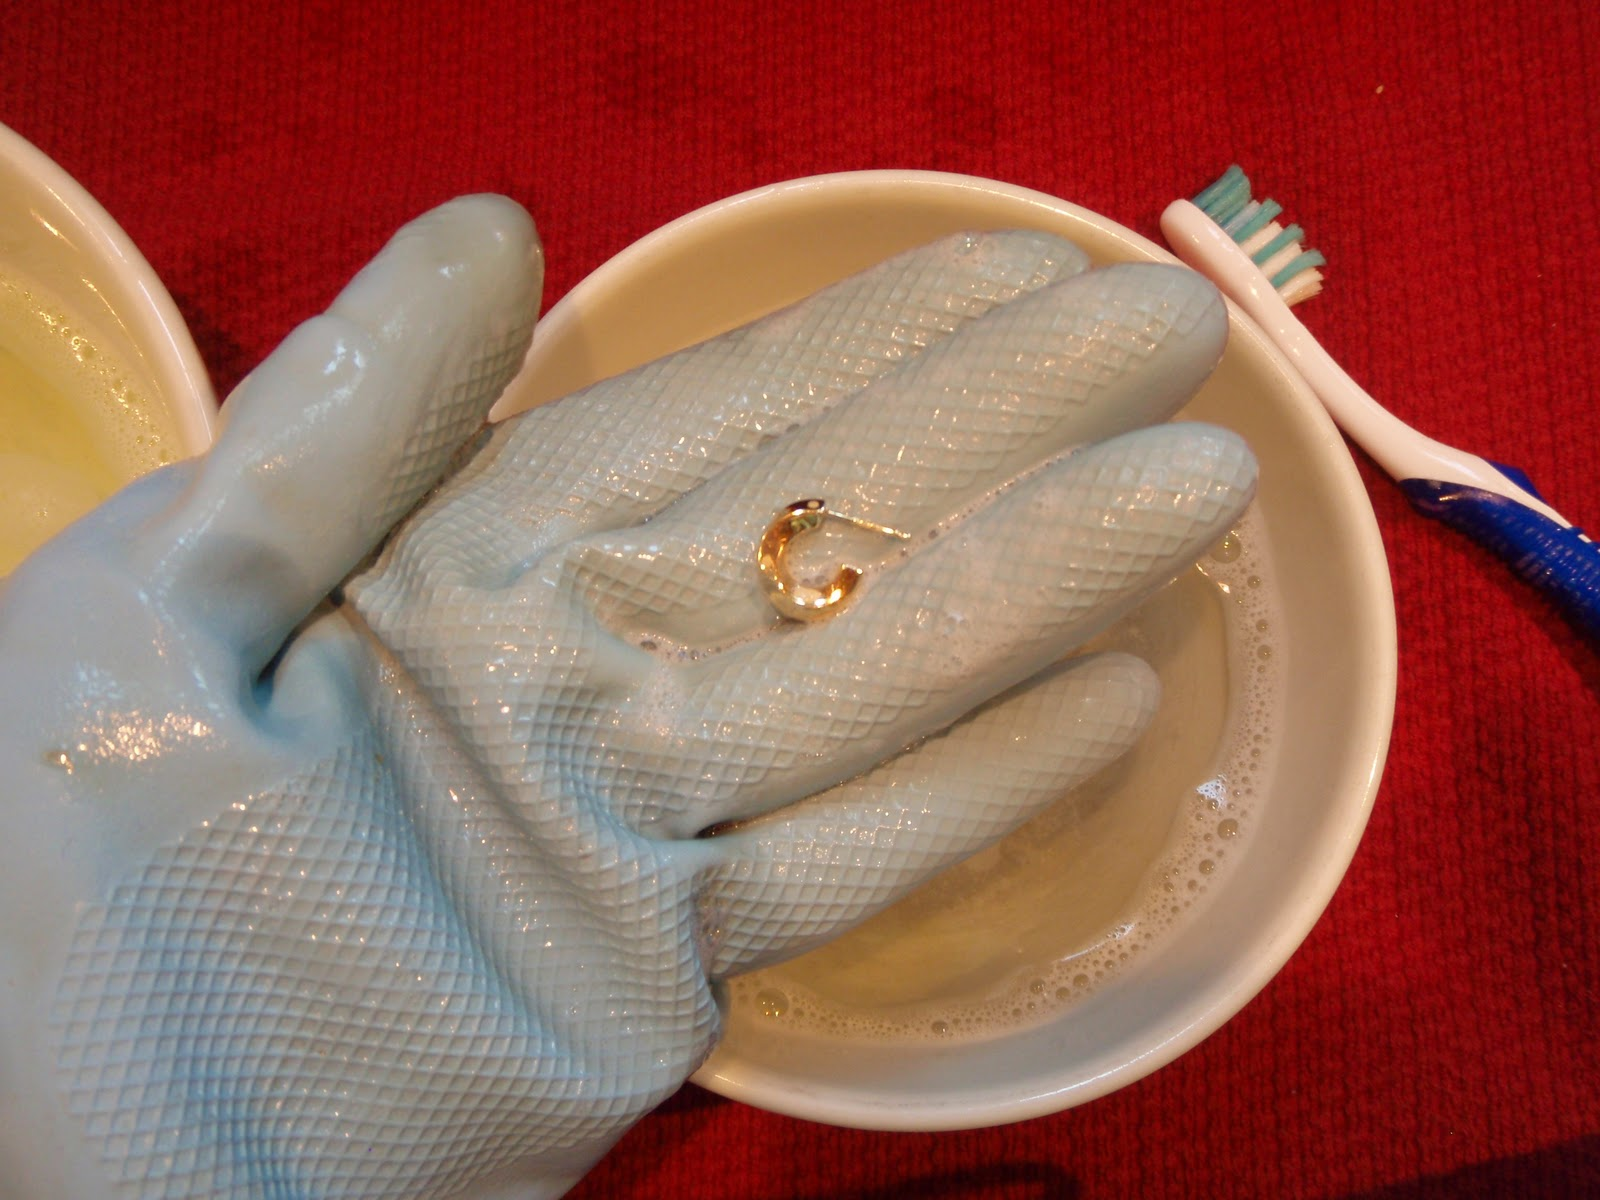 Cleaning Jewelry with Ammonia